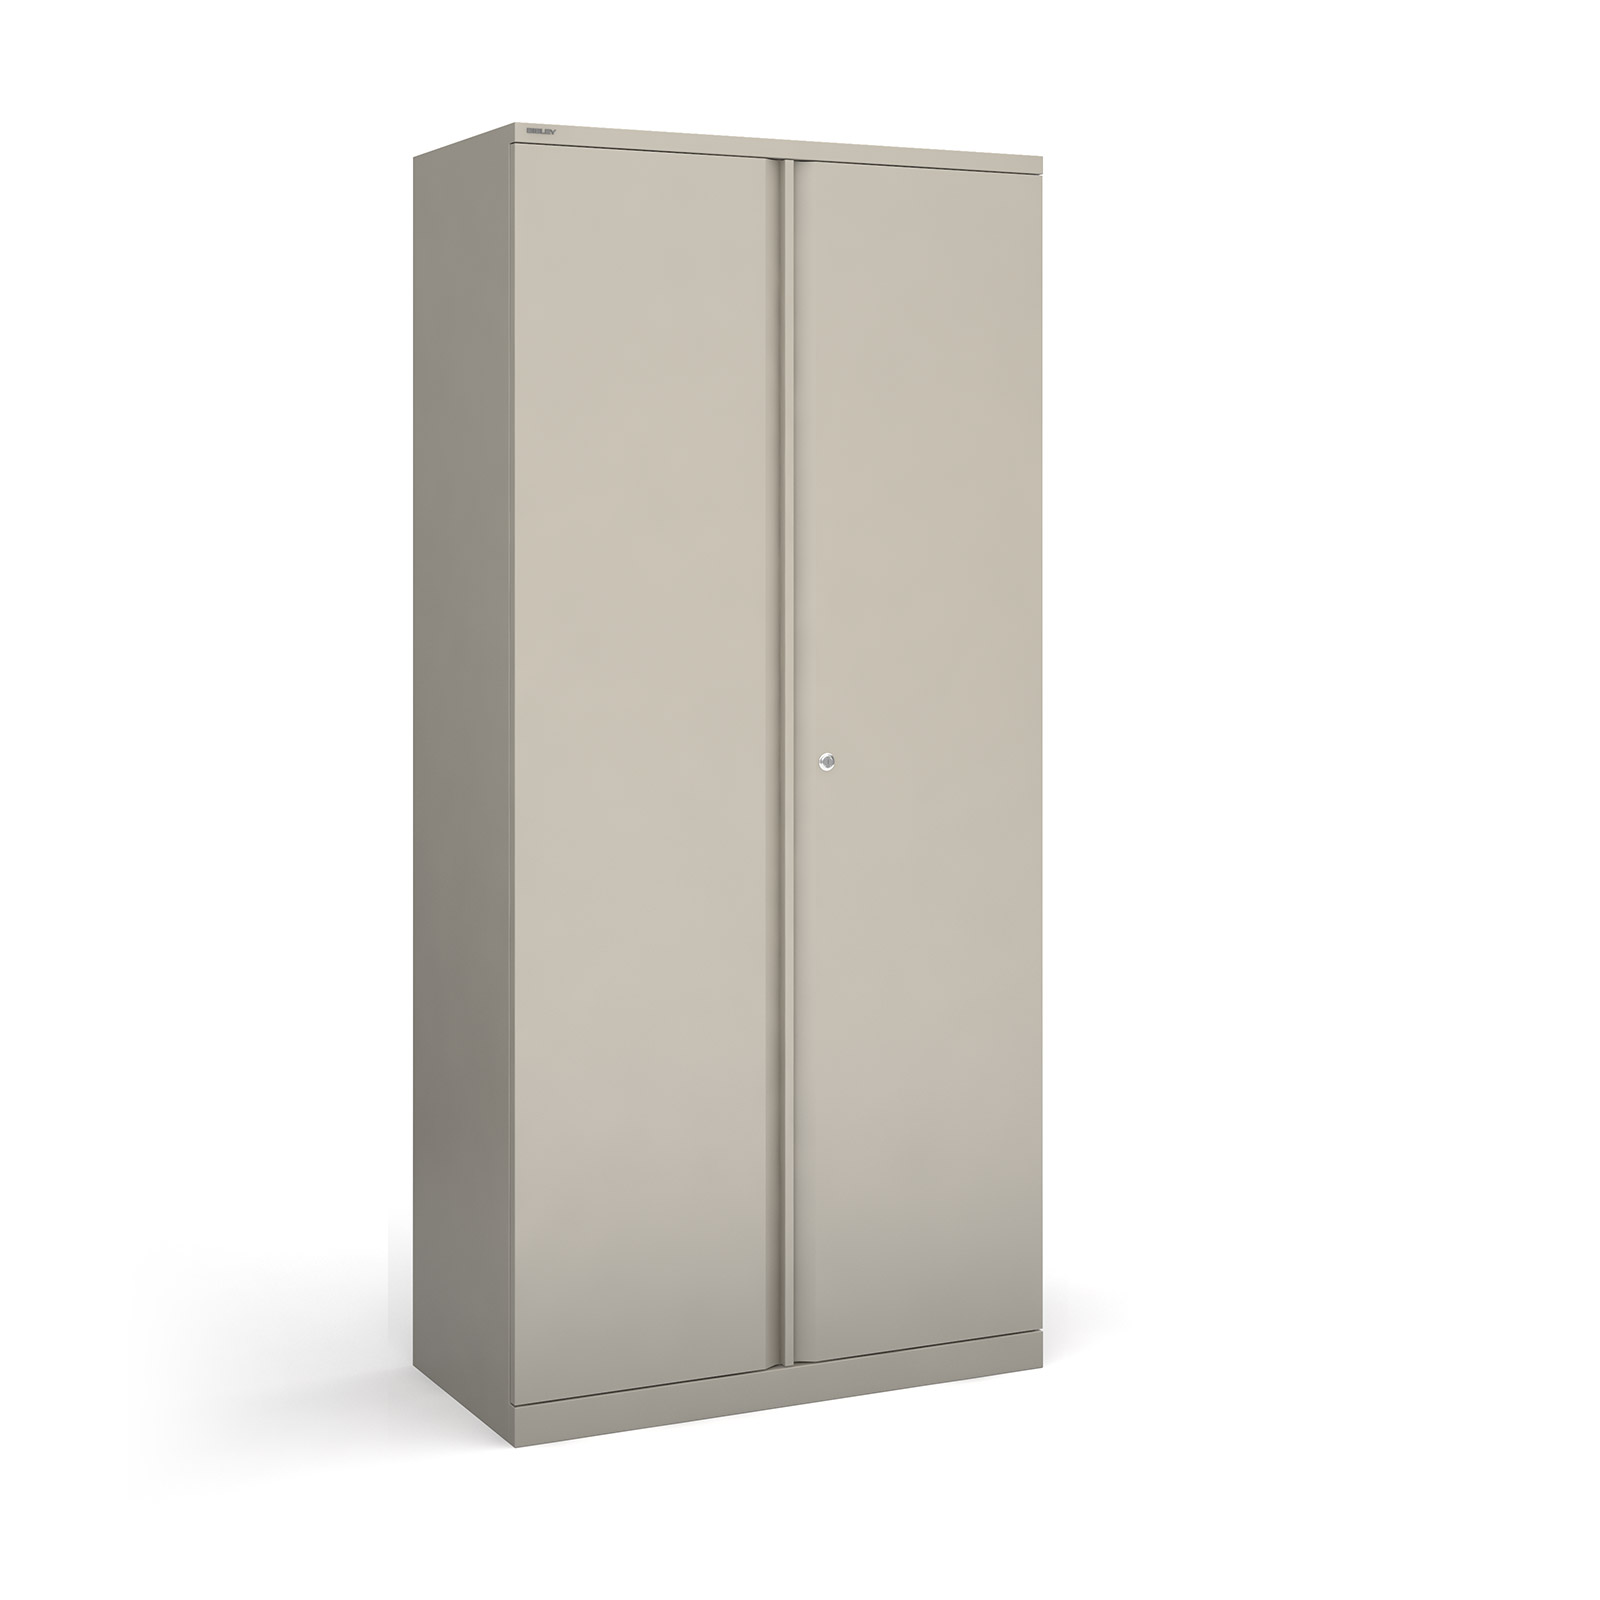 Bisley systems storage high cupboard 1970mm high - goose grey